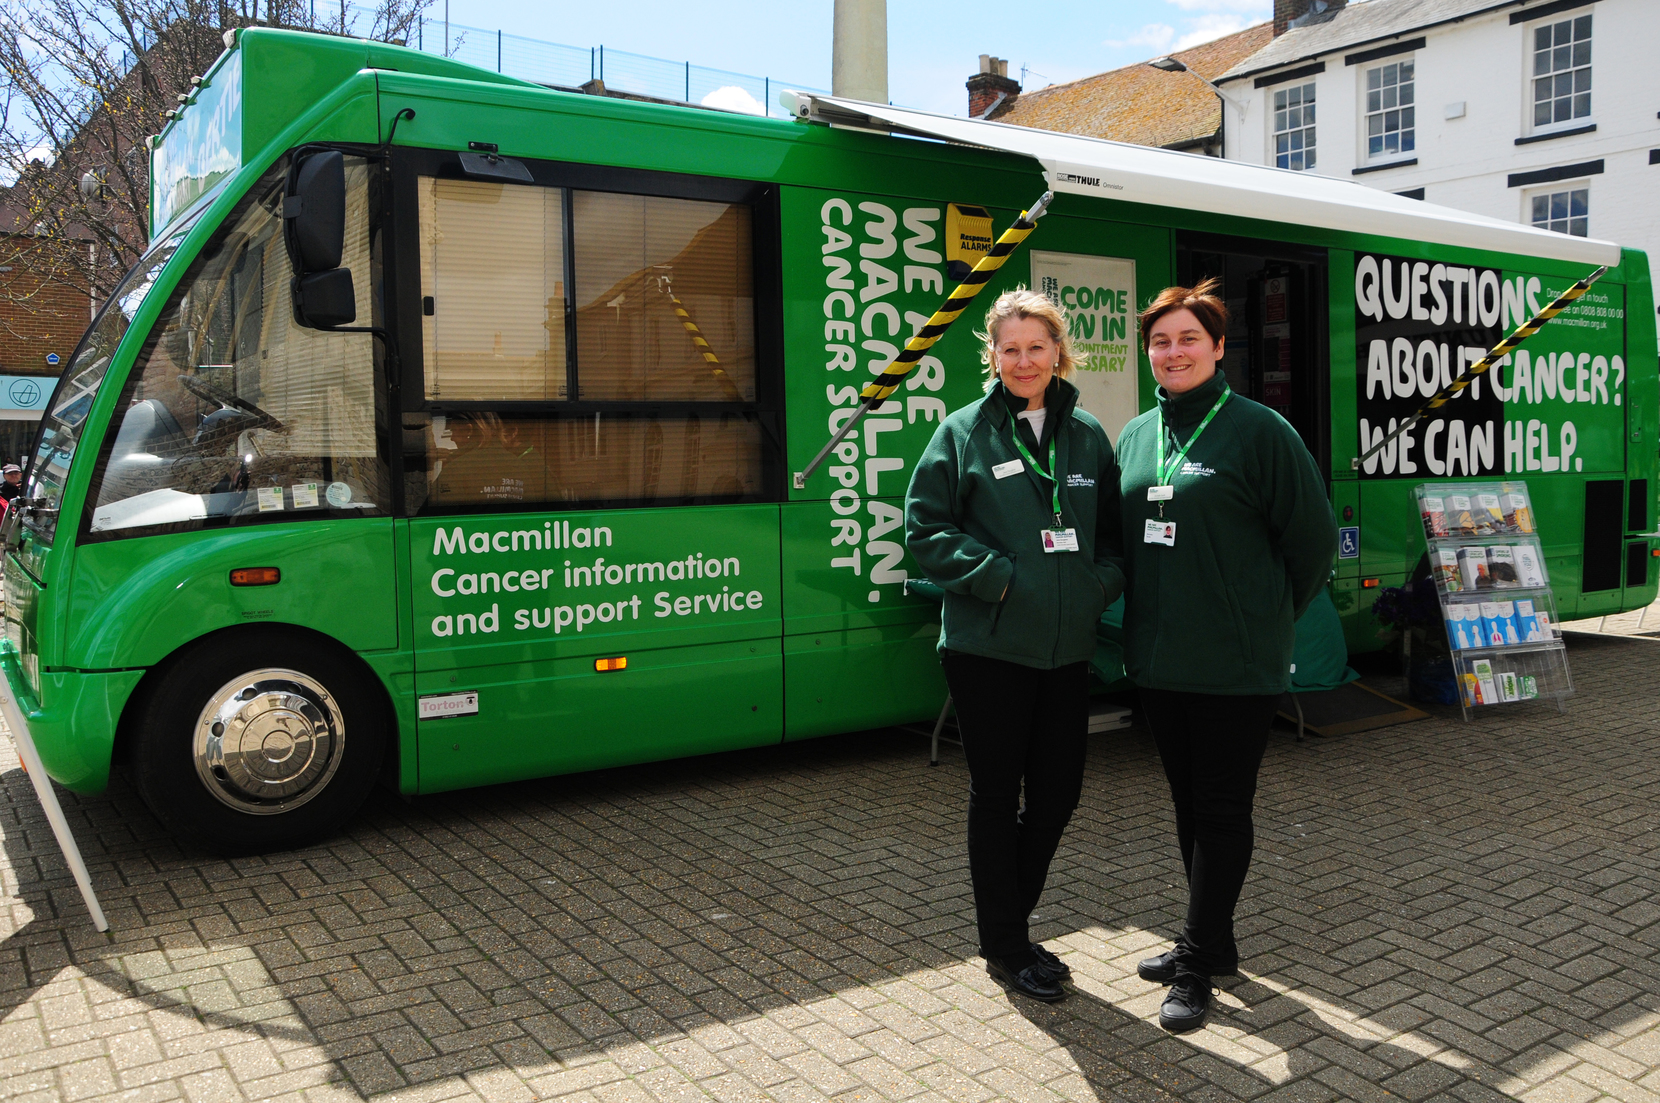 Macmillan Cancer Support Information Service in Chippenham